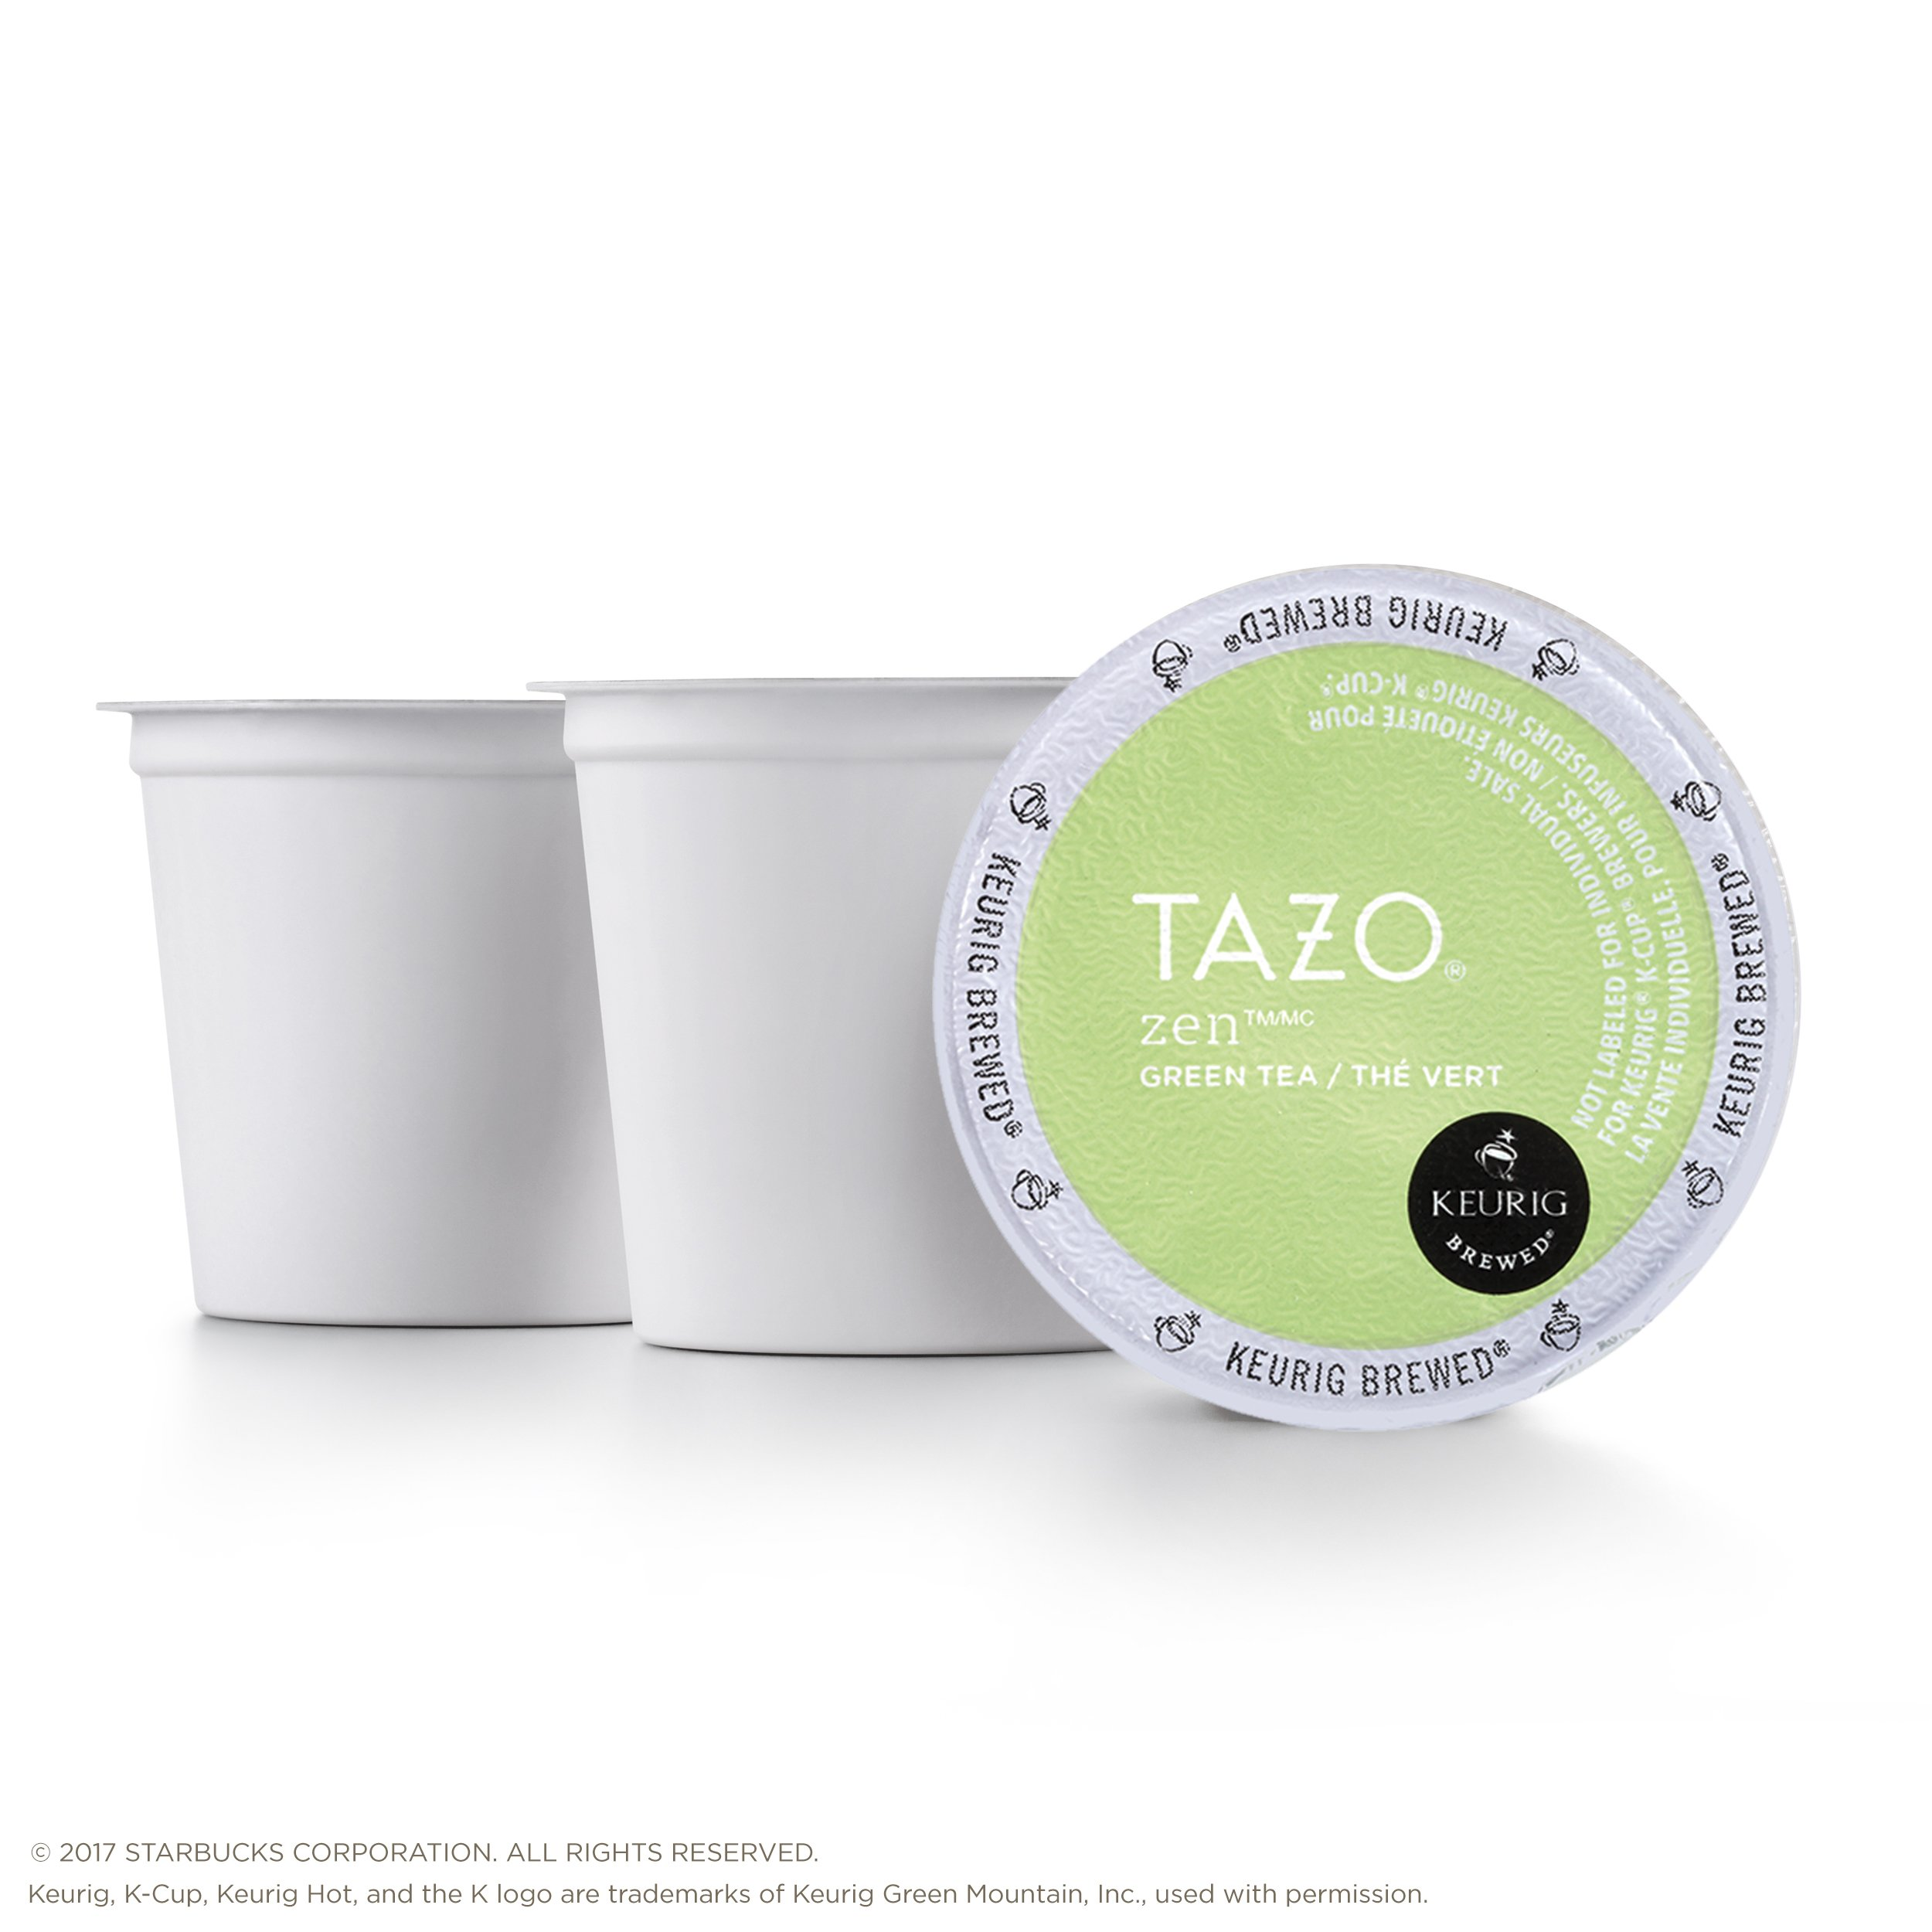 Tazo Zen Green Tea K-Cup, 10 ct (Pack of 6) by TAZO (Image #6)